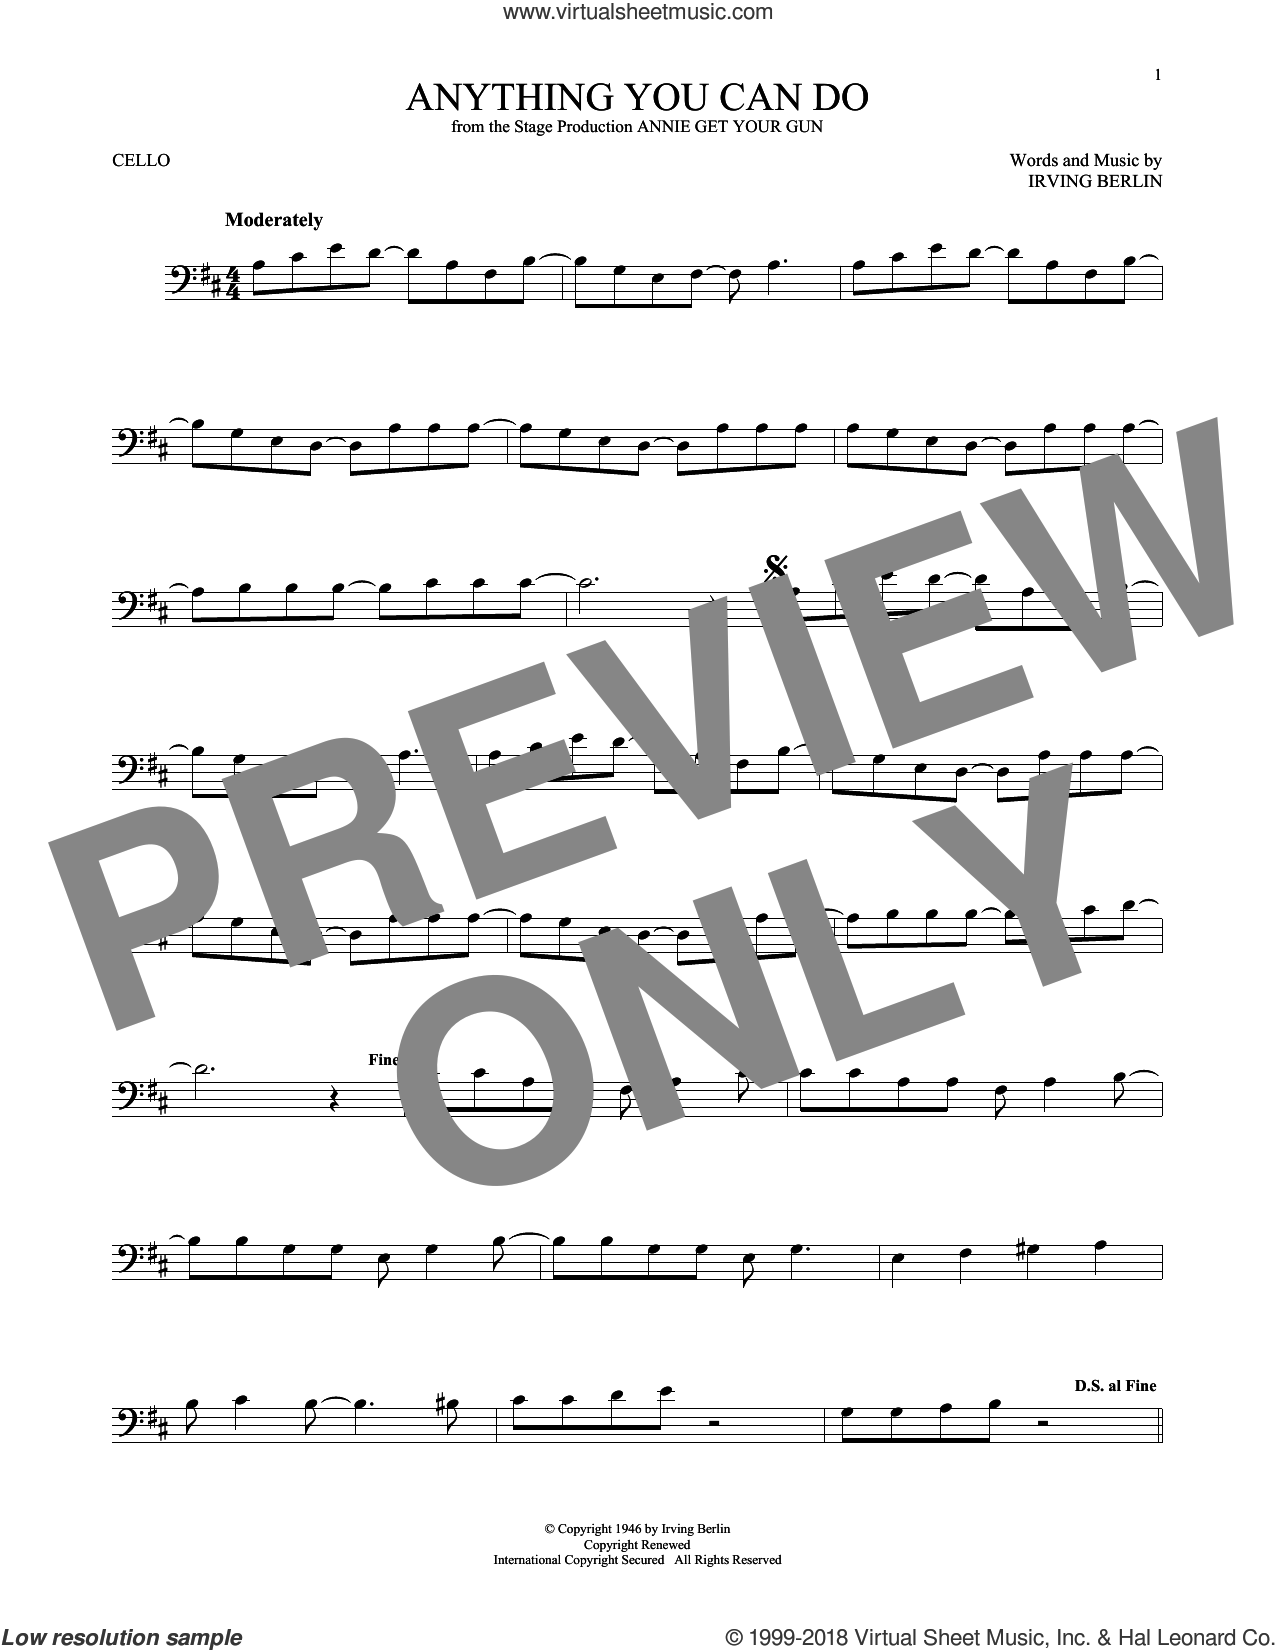 Anything You Can Do sheet music for cello solo by Irving Berlin, intermediate skill level